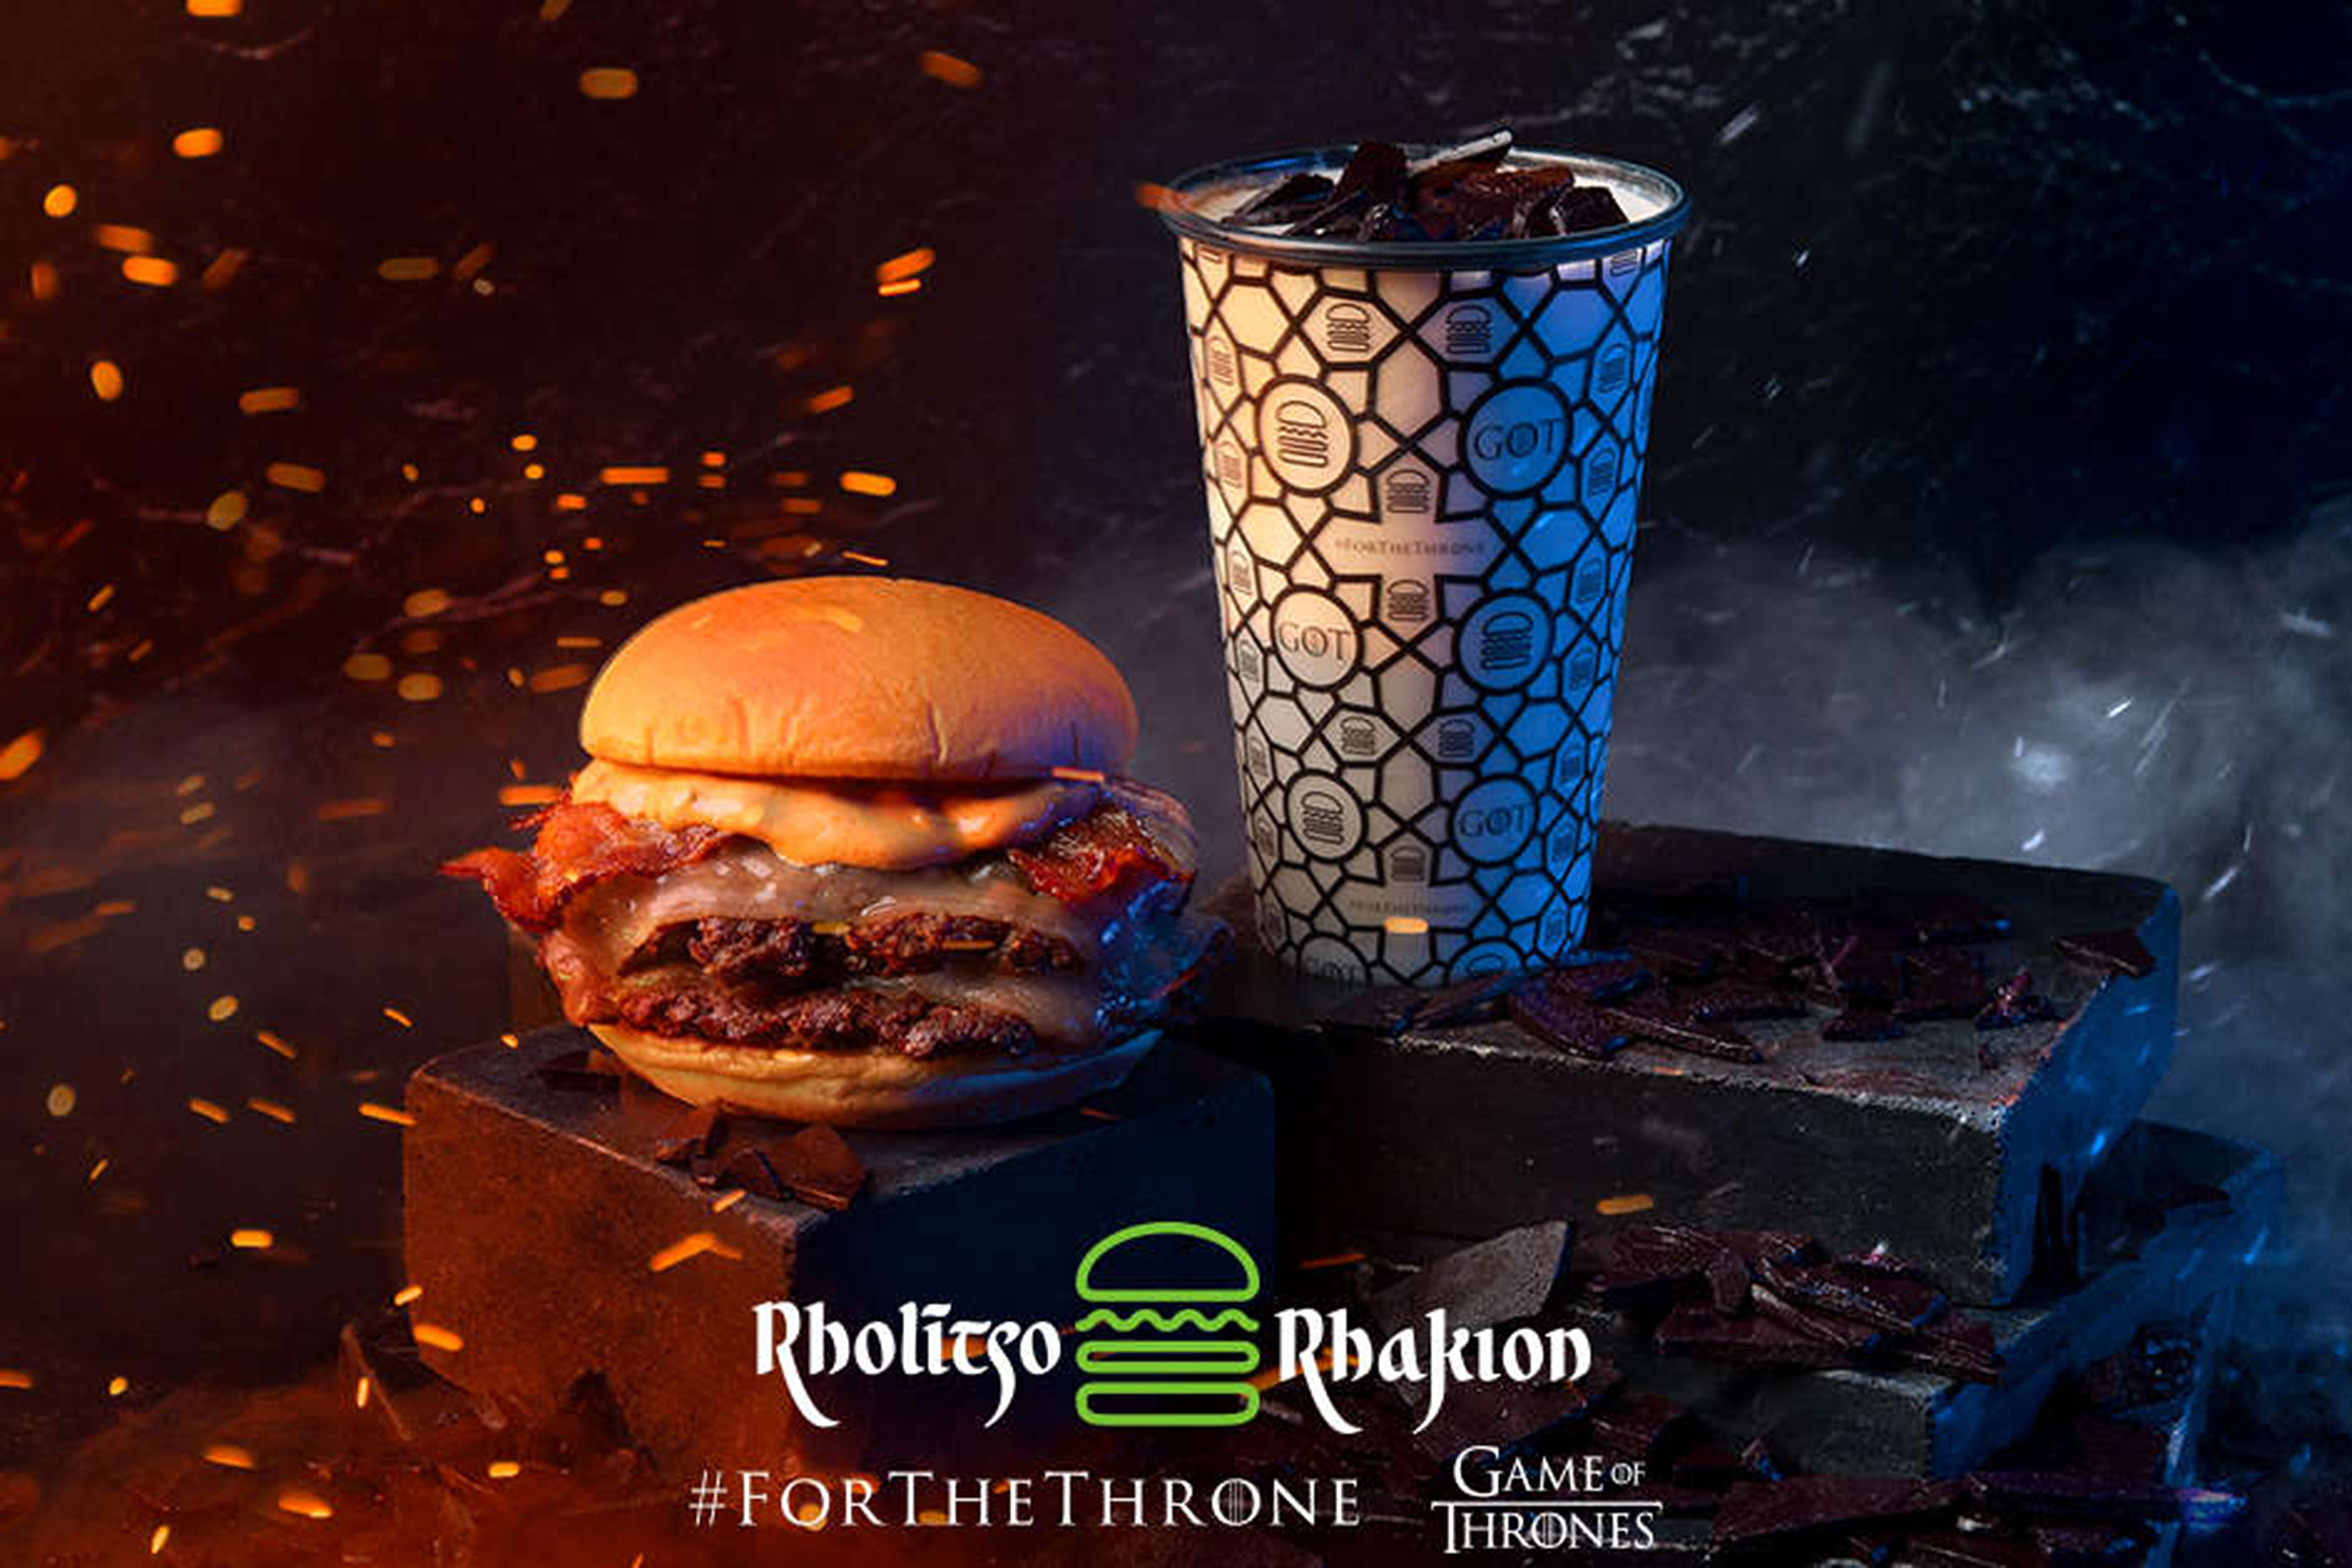 Shake Shack's secret <em>Game of Thrones</em> menu is now available nationwide, so time to brush up on your Valyrian